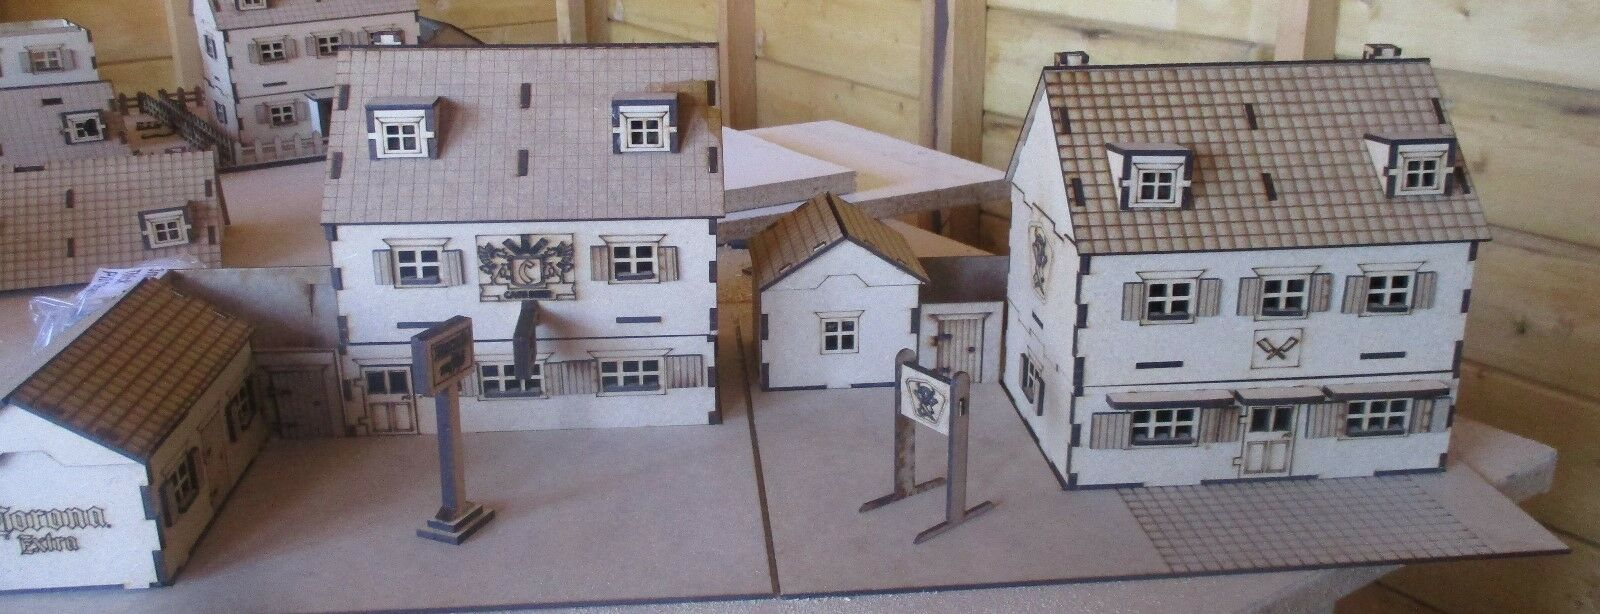 28mm Wargame Scenery 2 Tiles Pub and Butchers Bolt Action (Set B)